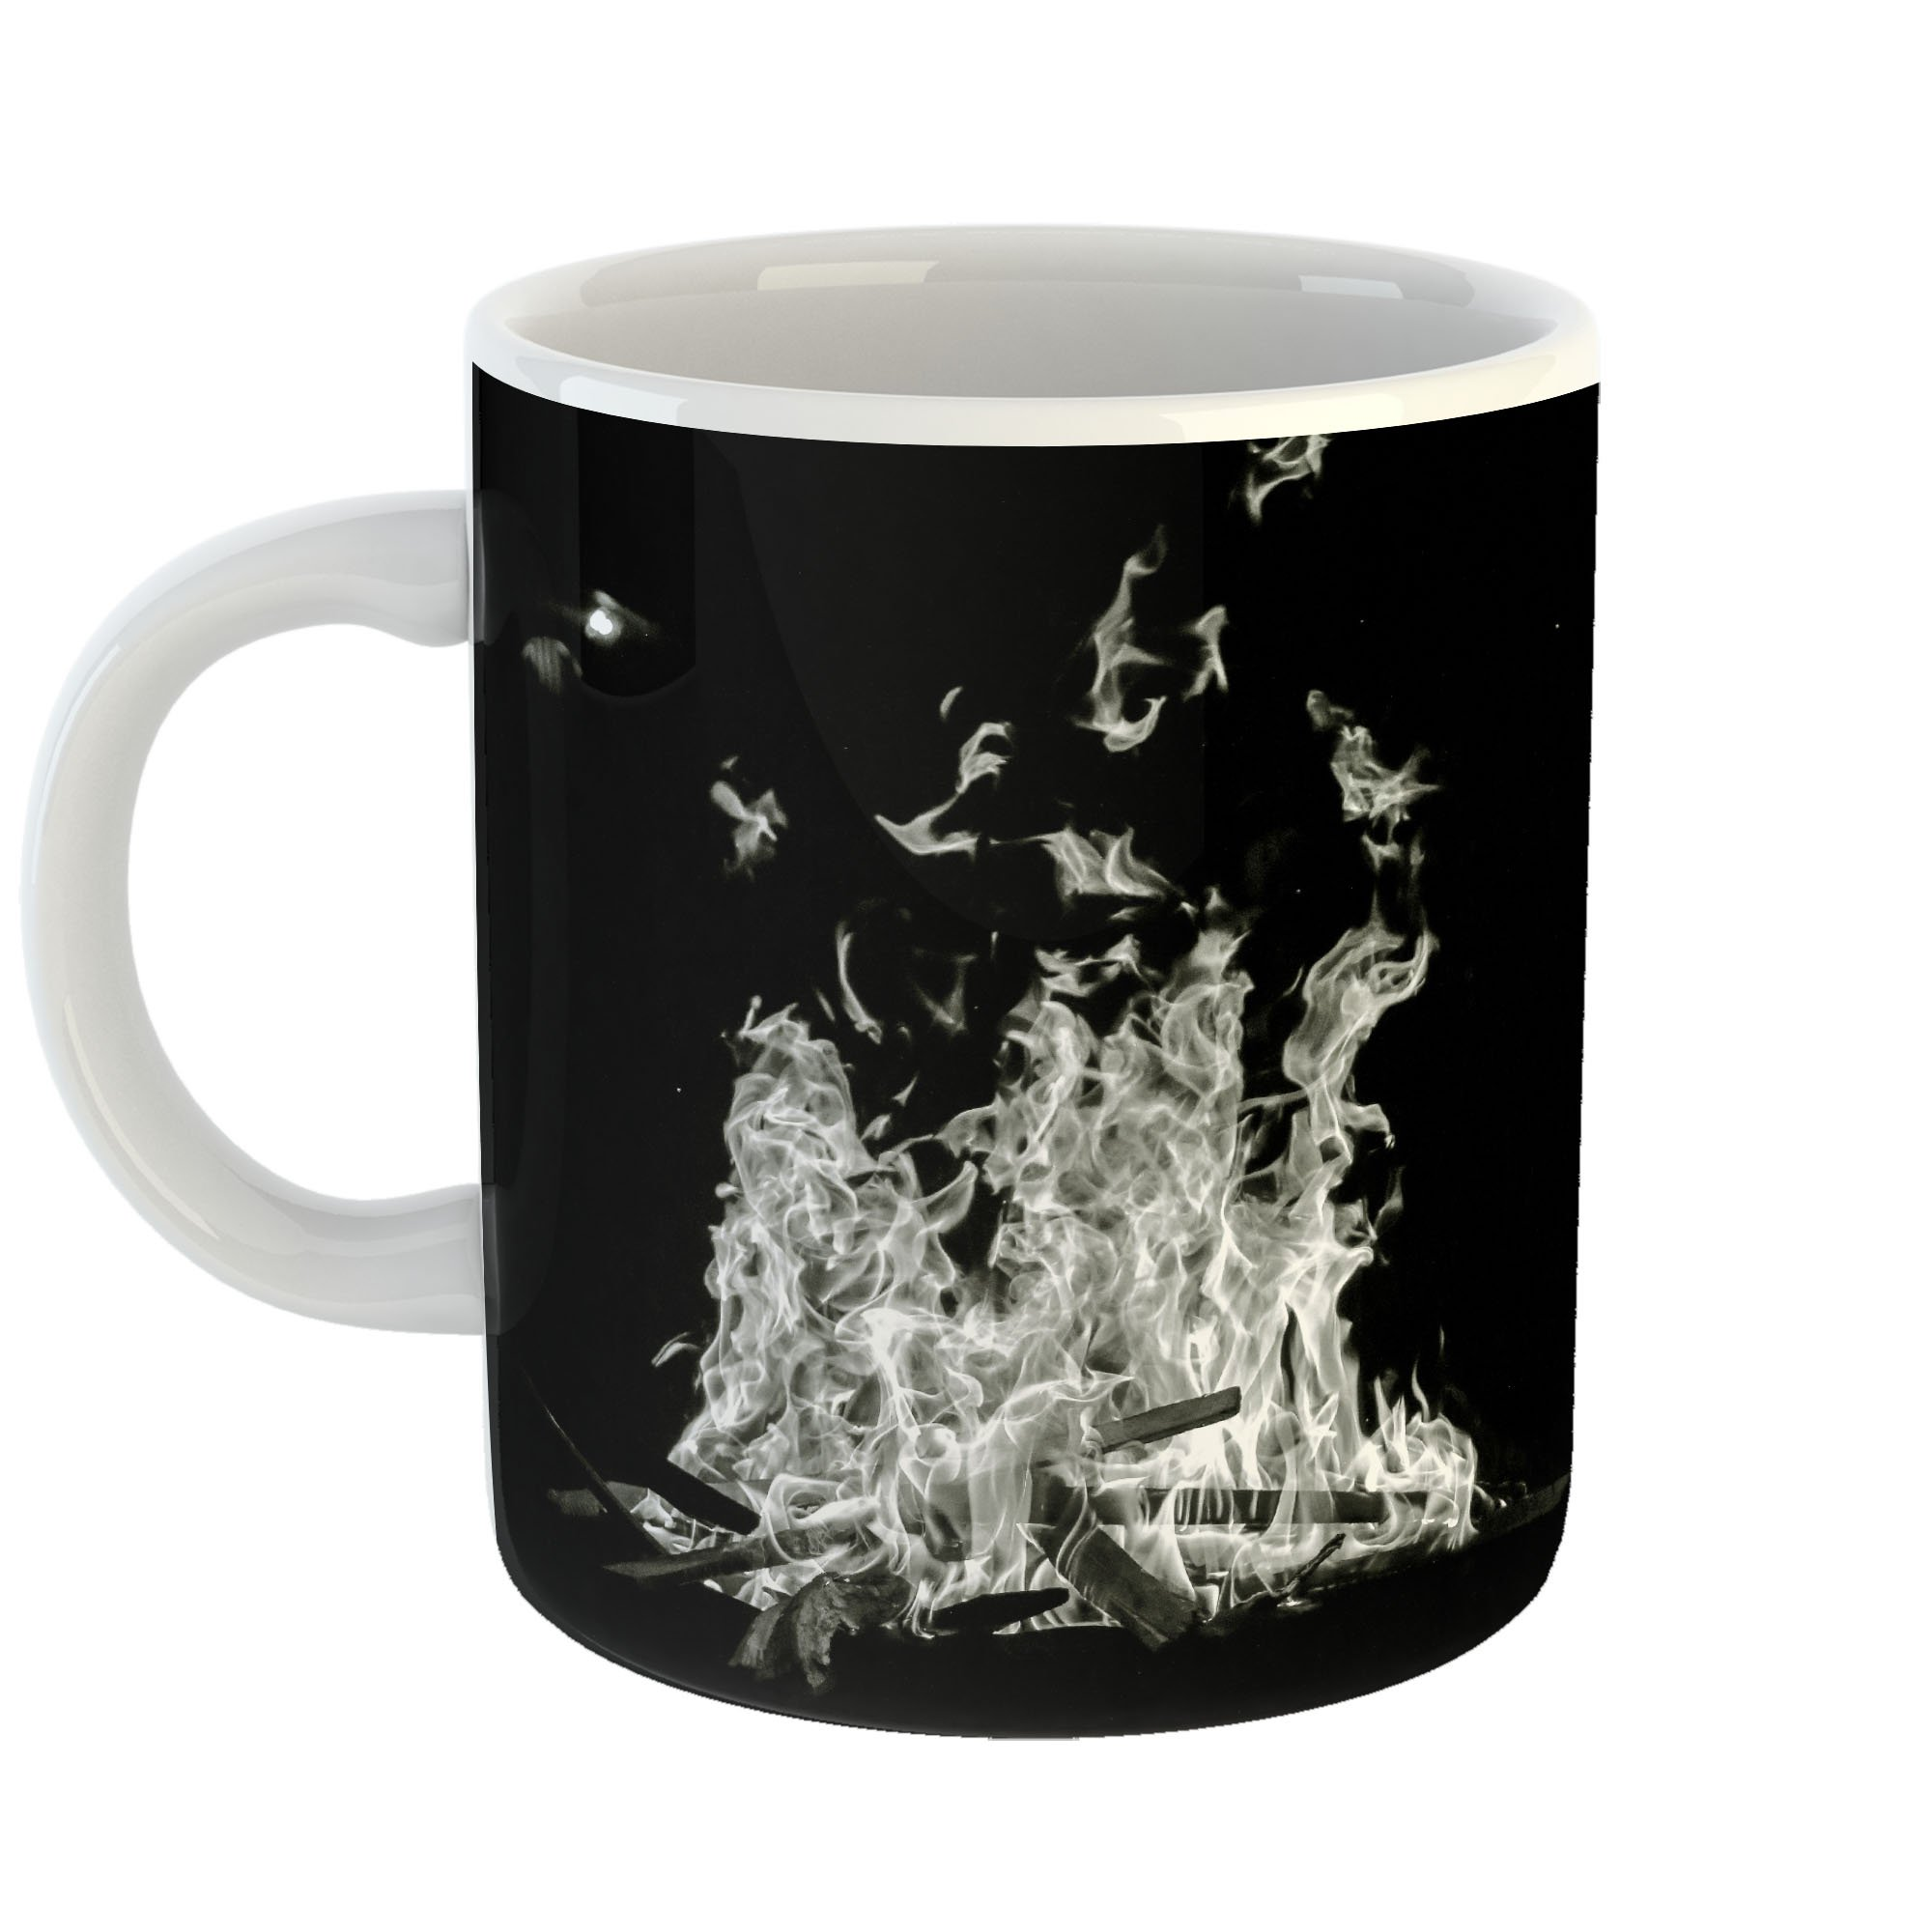 Westlake Art - Hotel Artist - 11oz Coffee Cup Mug - Modern Picture Photography Artwork Home Office Birthday Gift - 11 Ounce (F4D4-6D010)